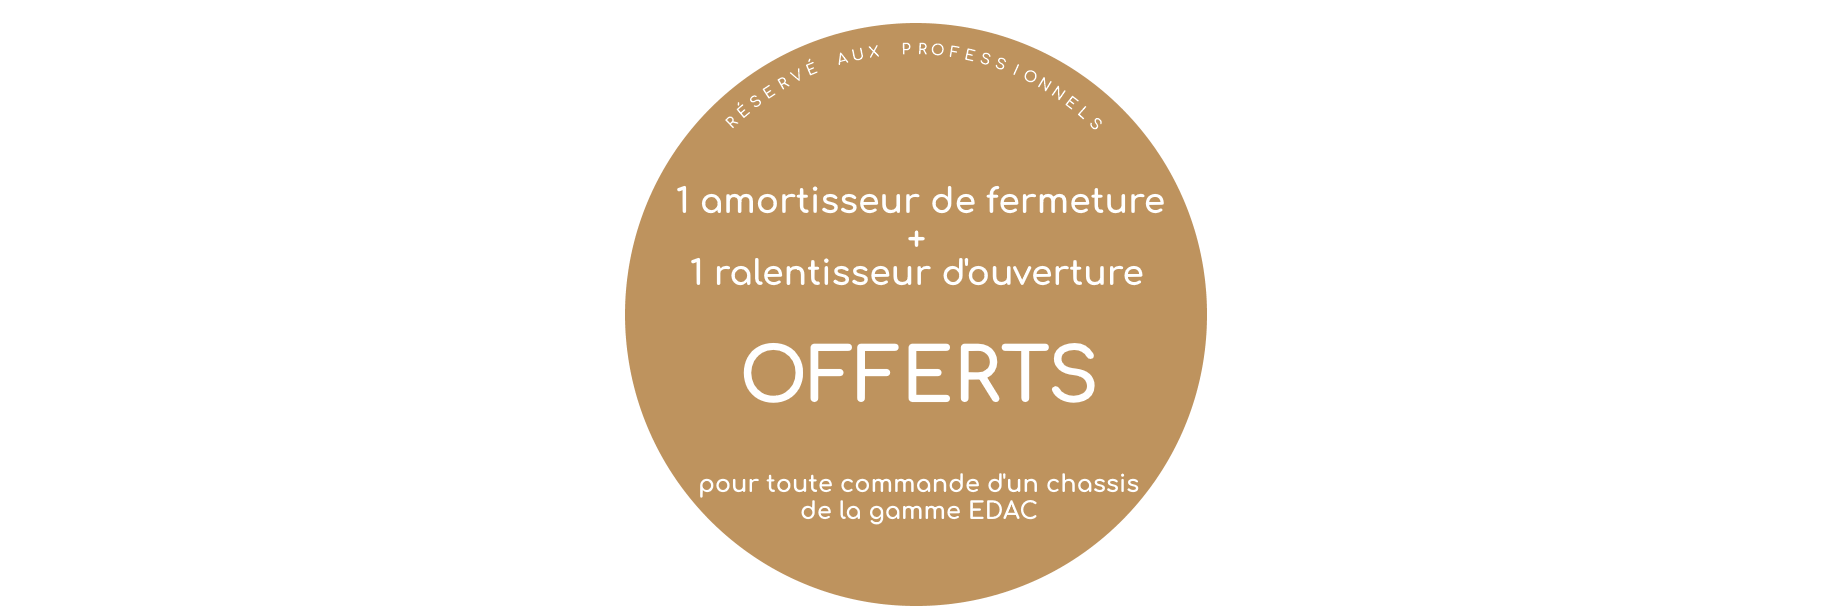 cercle_offerts.png